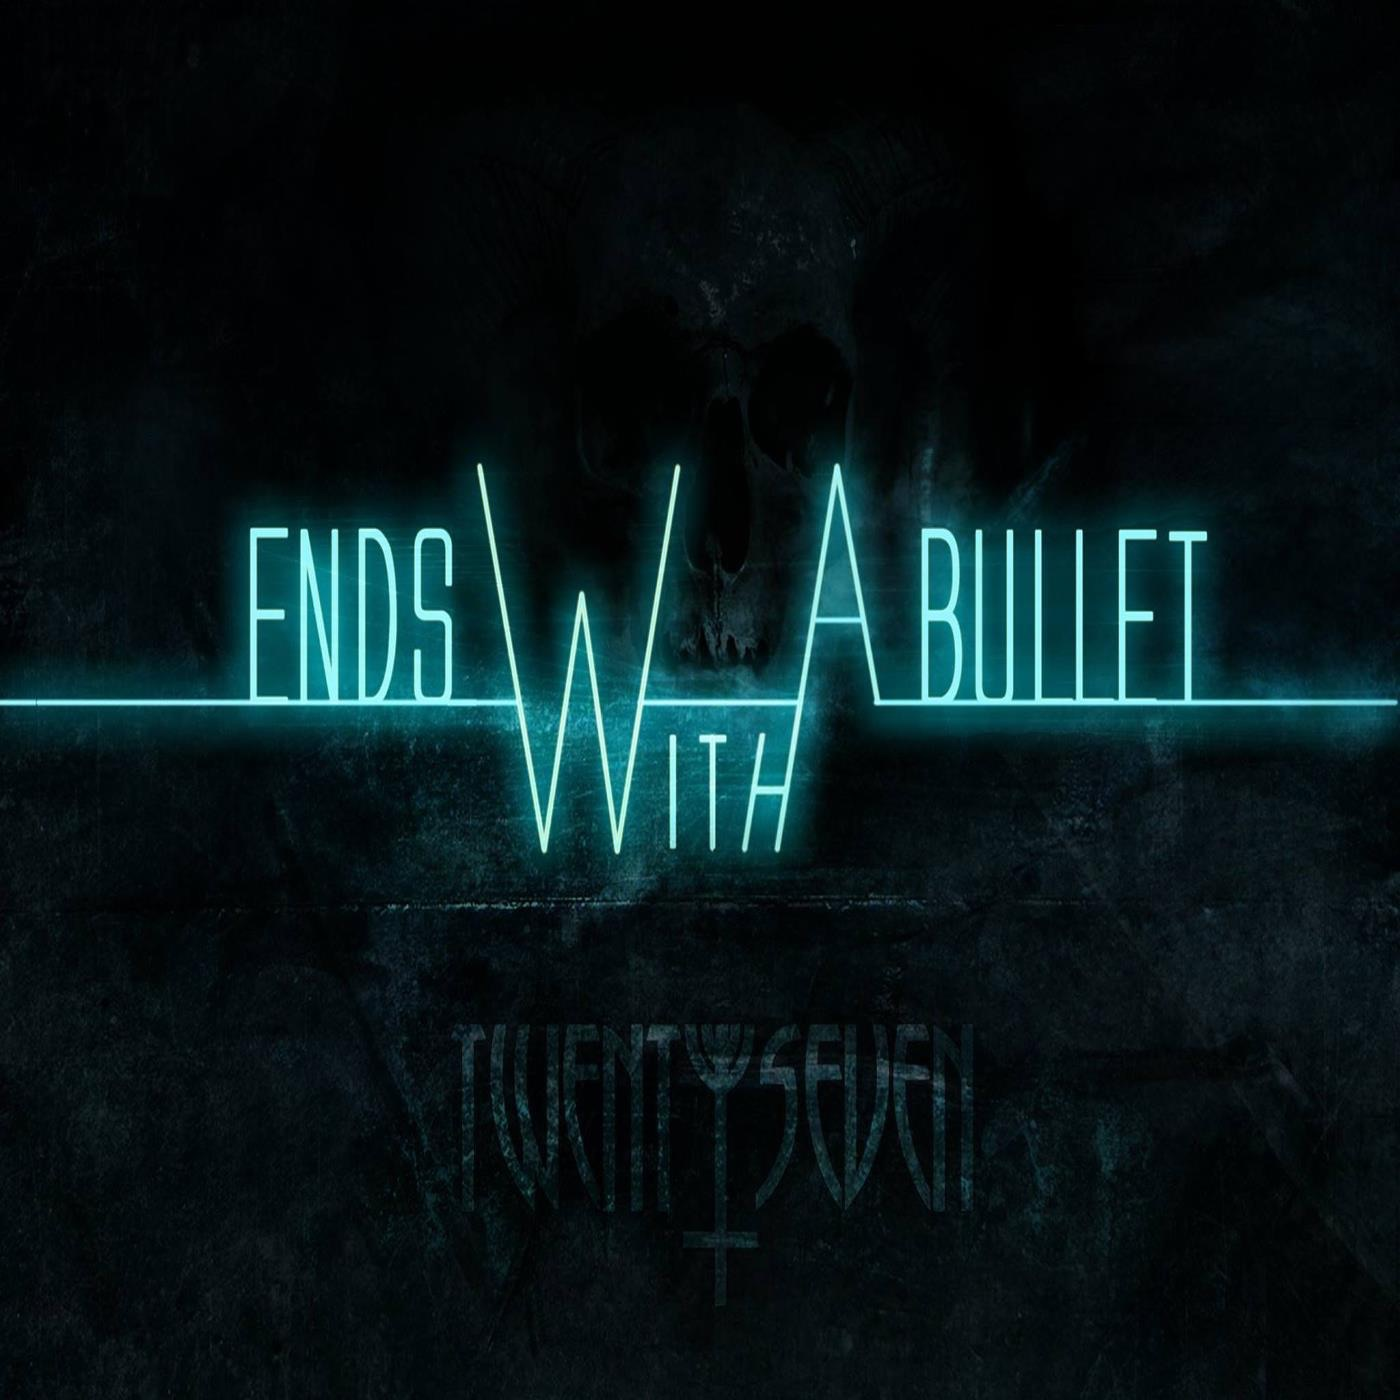 Ends With A Bullet - Twenty seven (2014)